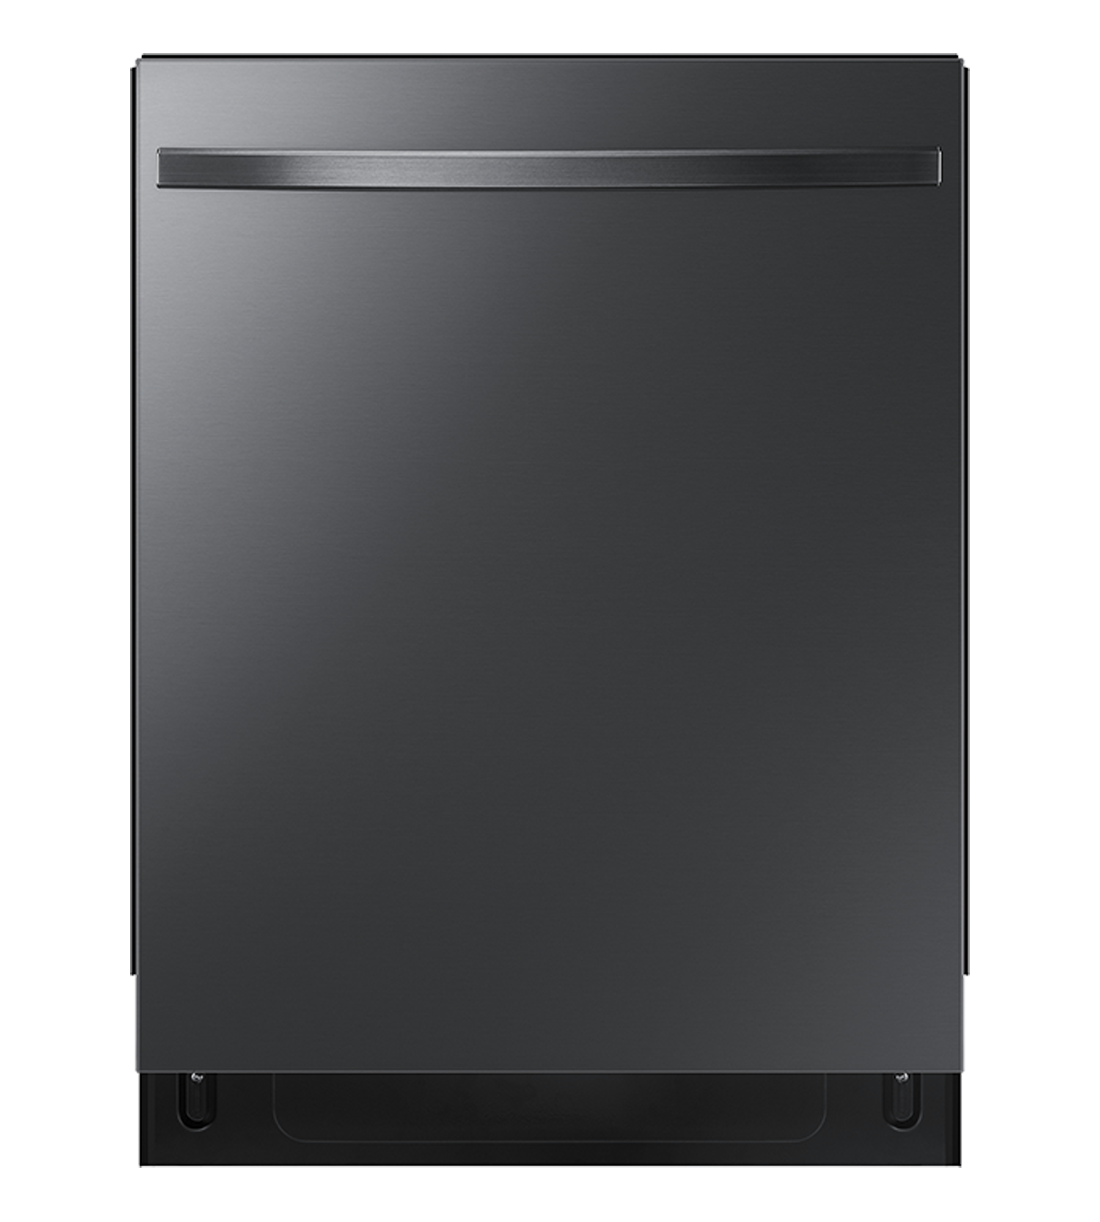 Samsung Dishwasher 24 DW80R5061U